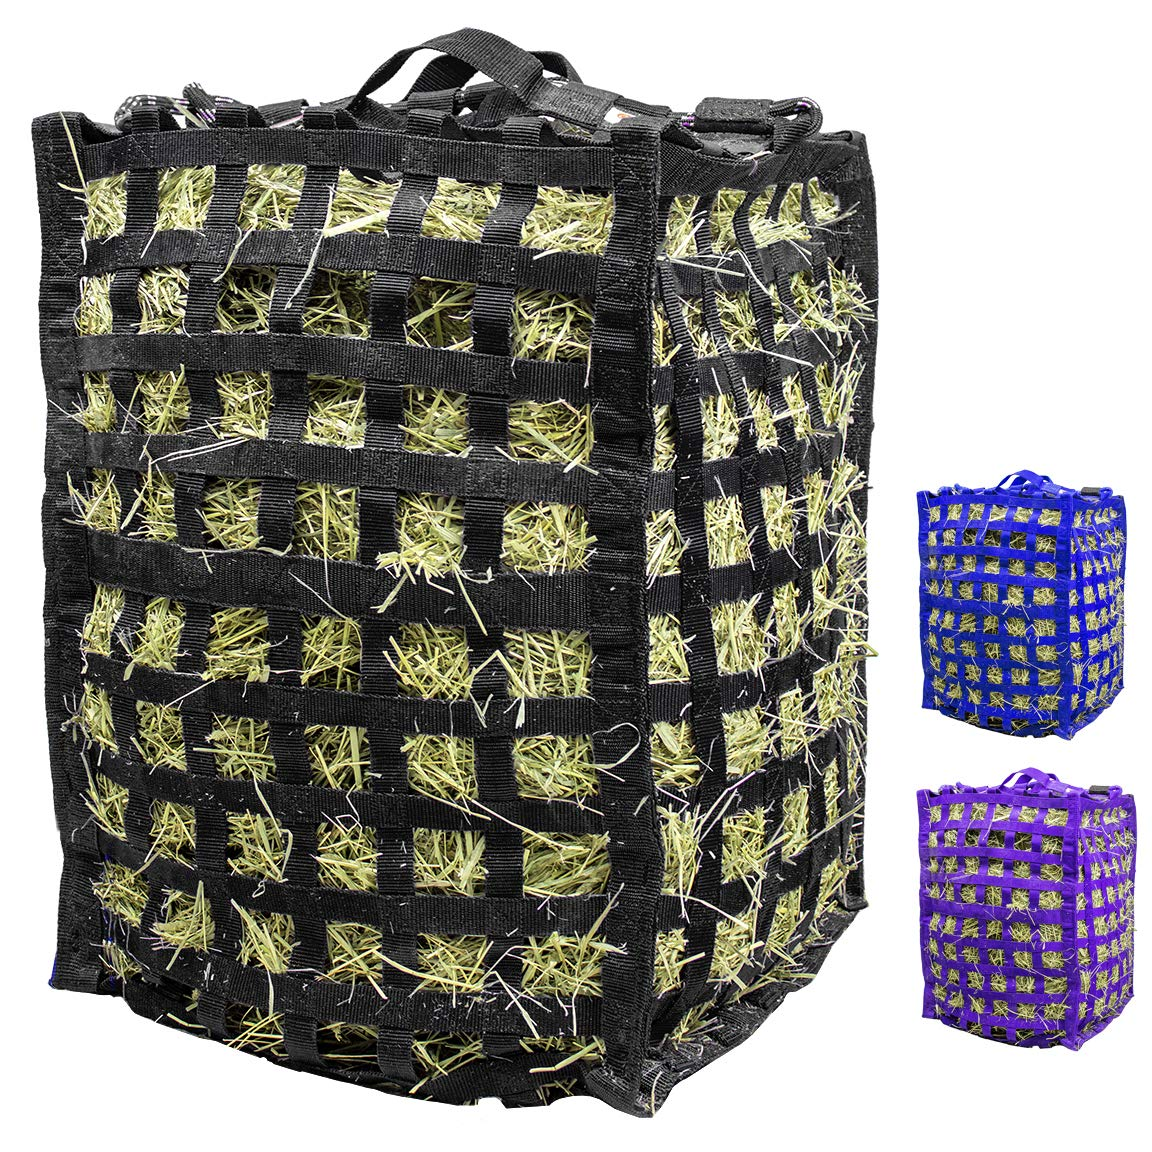 Derby Originals Natural Grazer Patented Four Sided Slow Feed Horse Hay Bag with One Year Warranty by Derby Originals